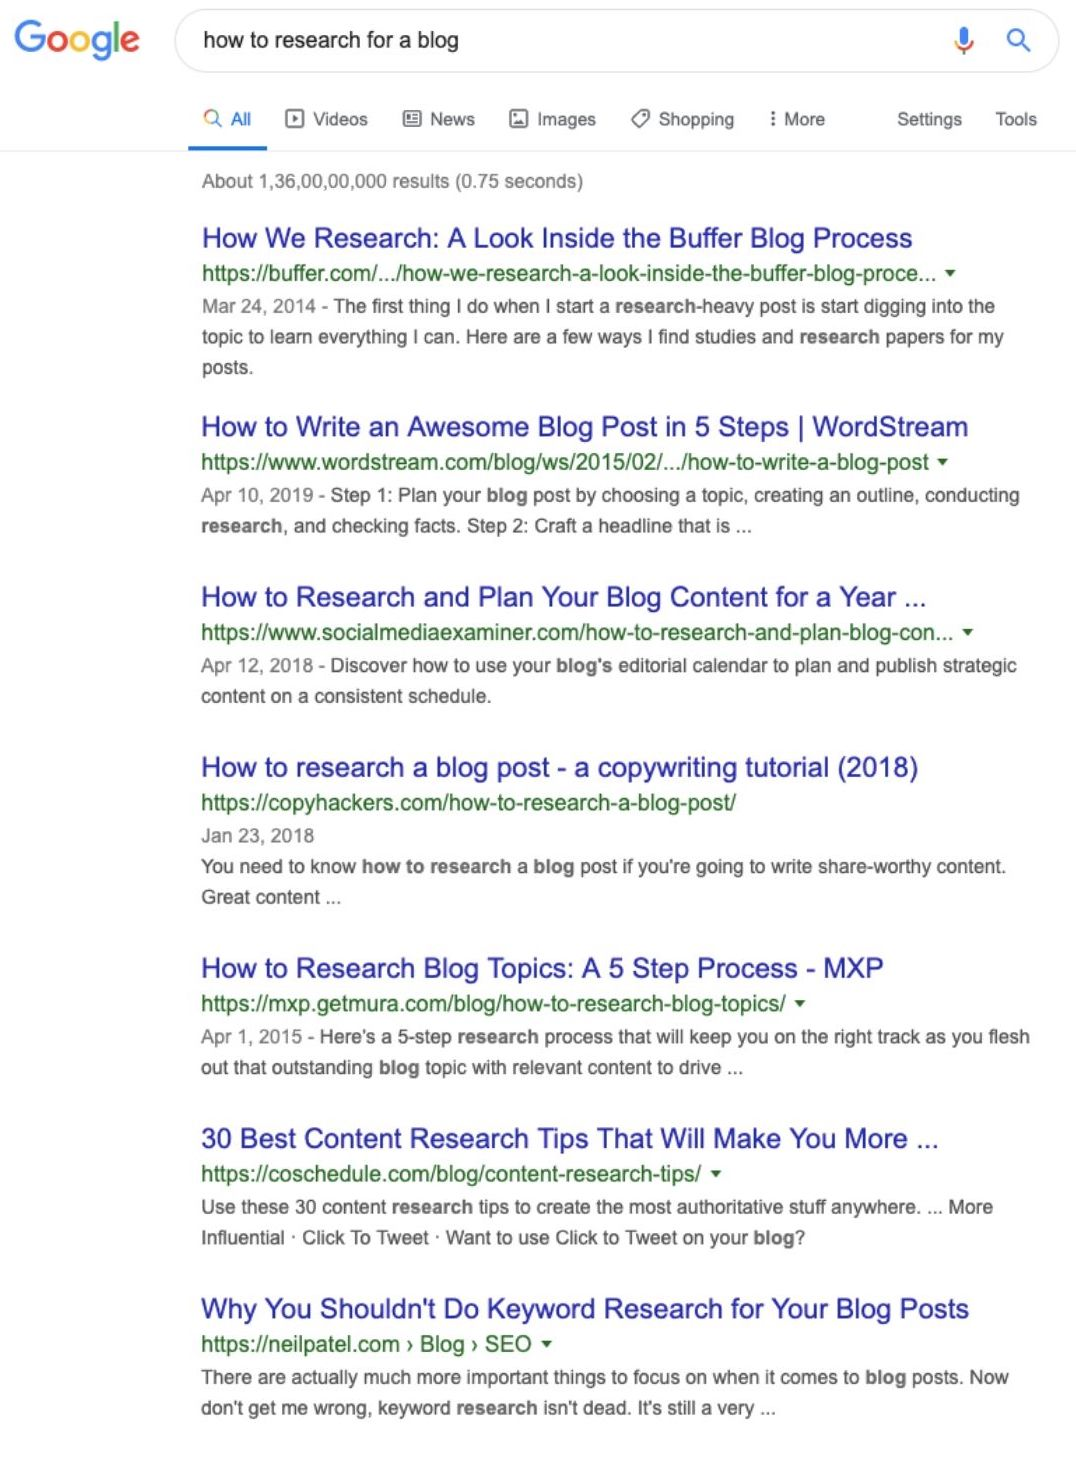 How to Research for a Blog Post? [Updated] | RankWatch Blog